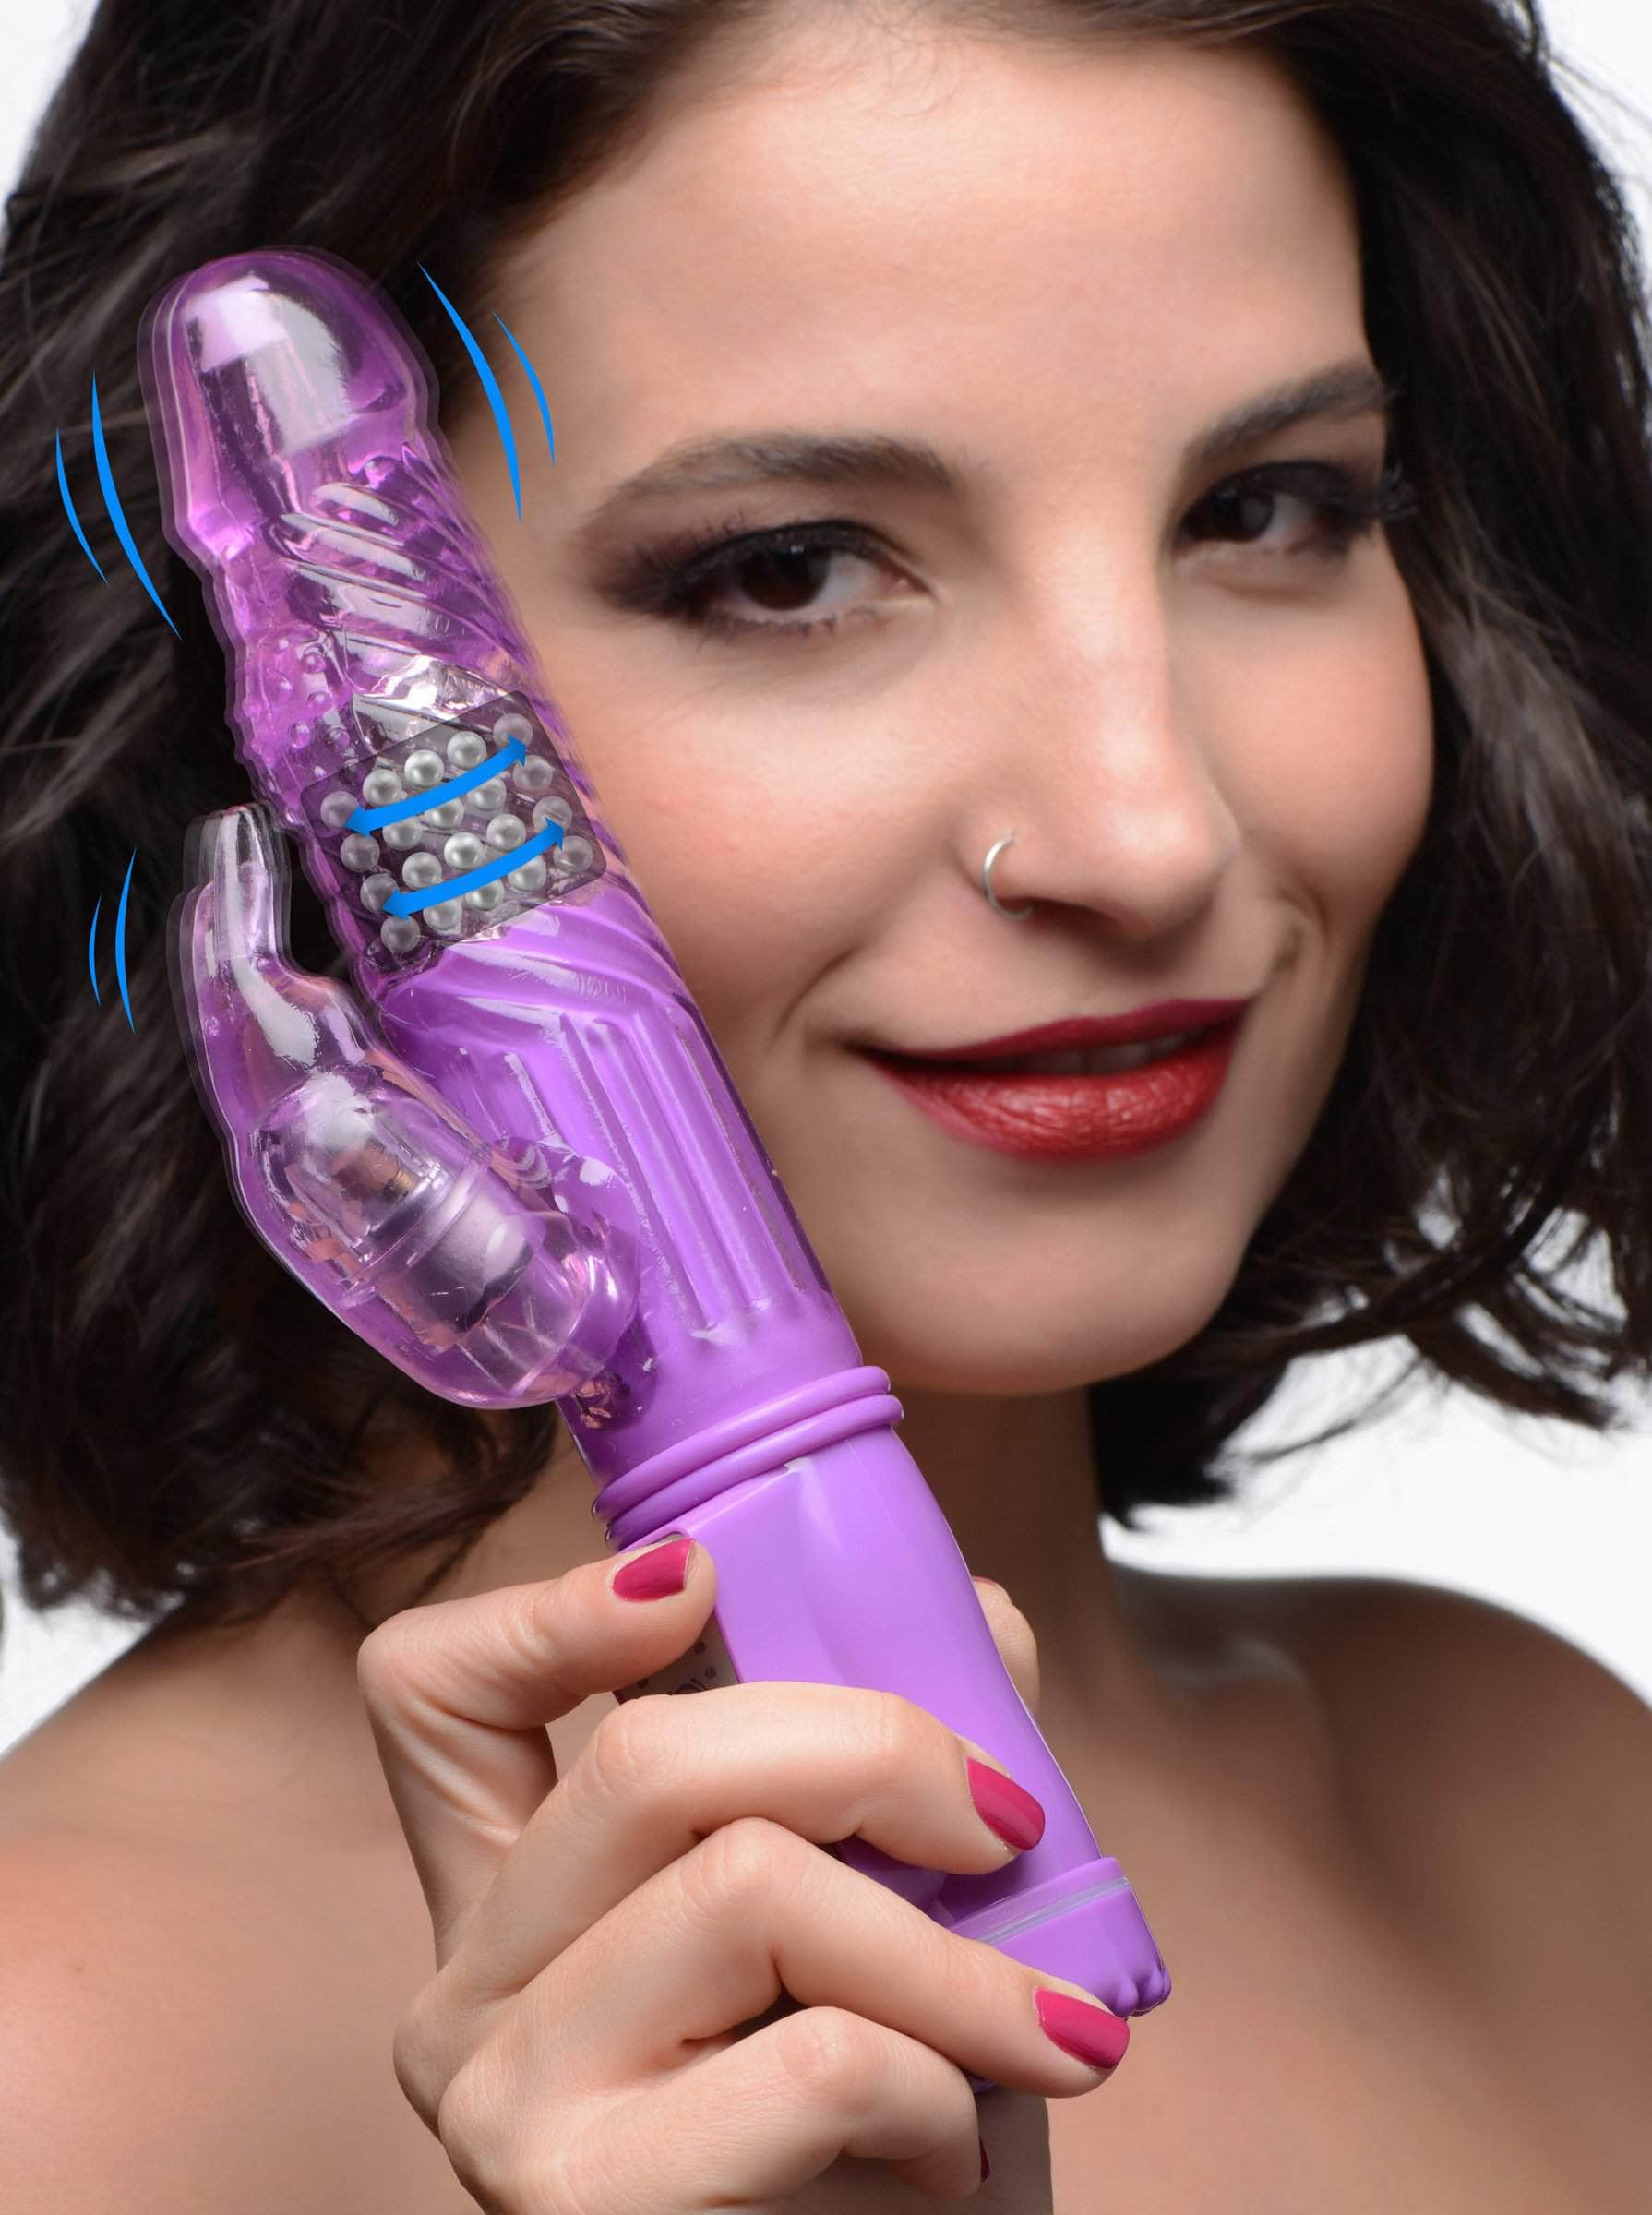 Purple Rabbit Vibrator